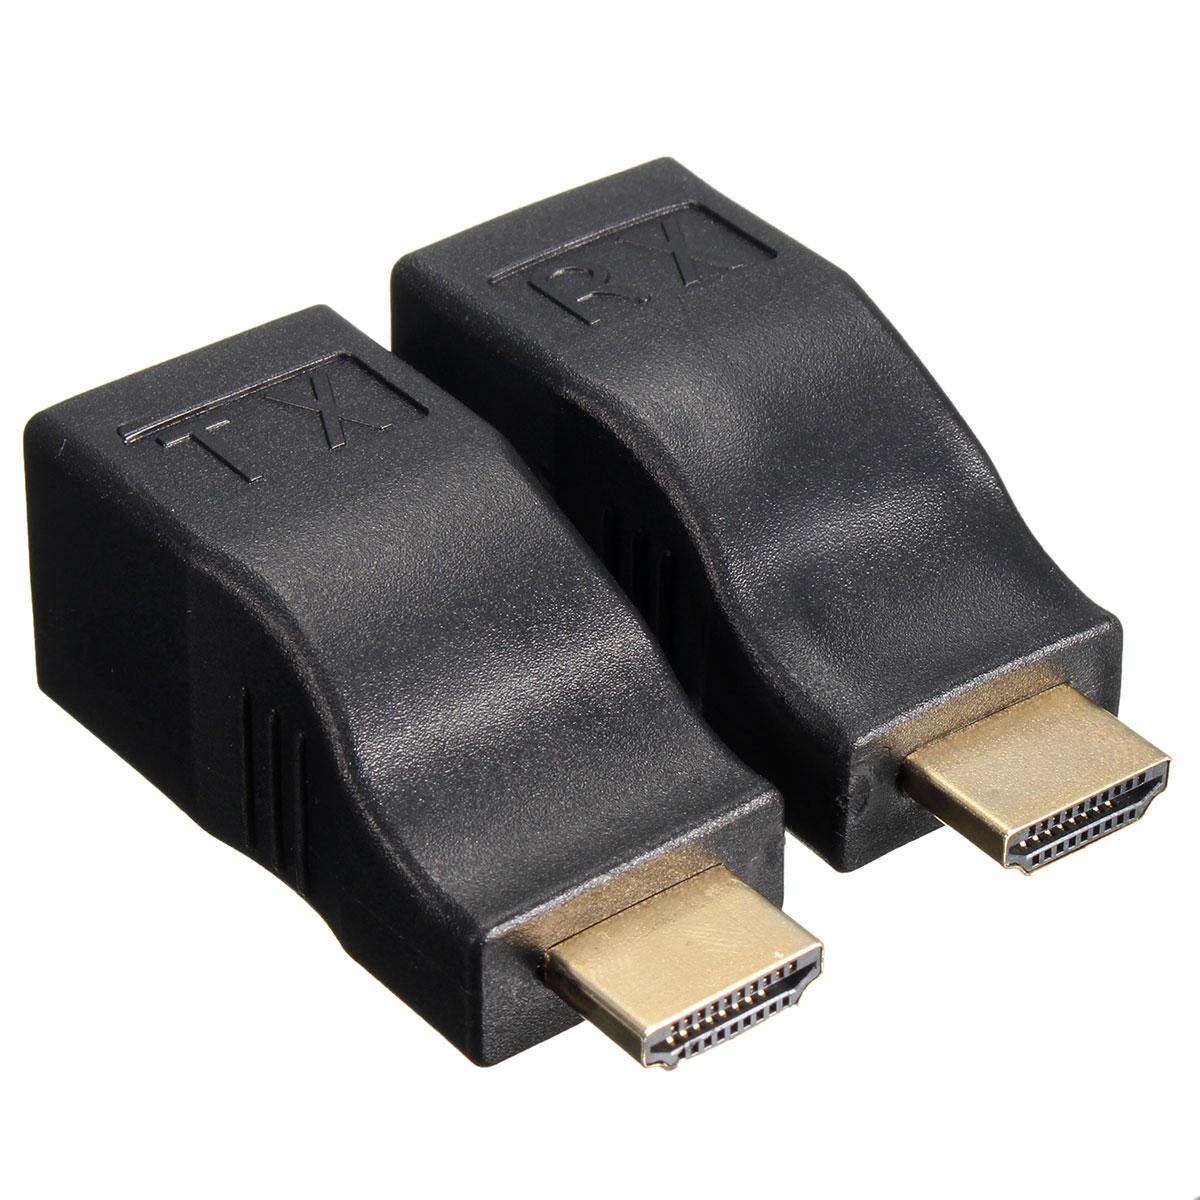 Cable Ethernet 2pcs Hd To Rj45 Network Lan Ethernet Cable Extender Over By Cat 5e 6 Hd 1080p 3d